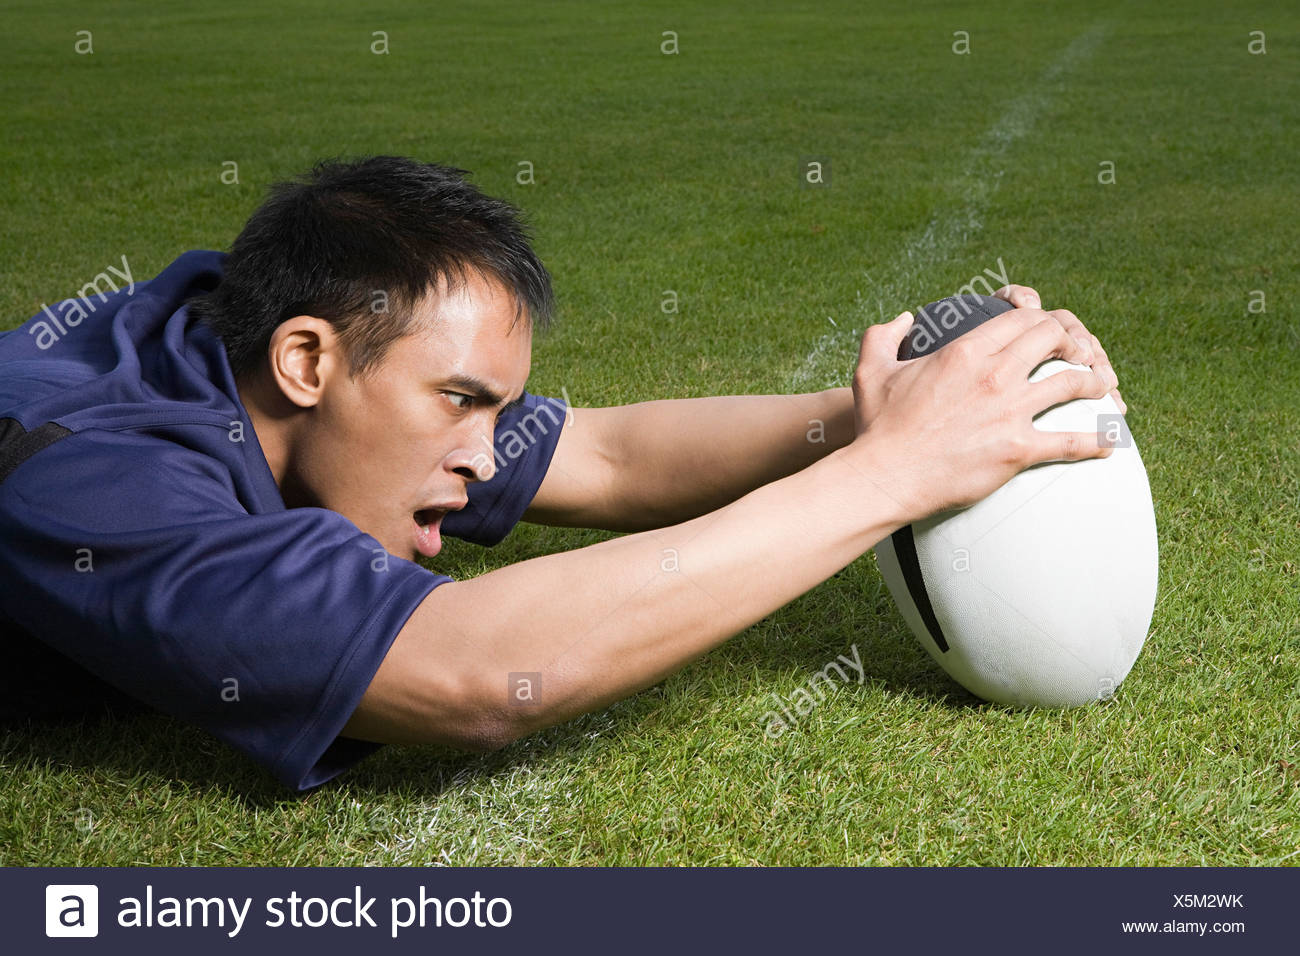 A rugby player scoring a try - Stock Image